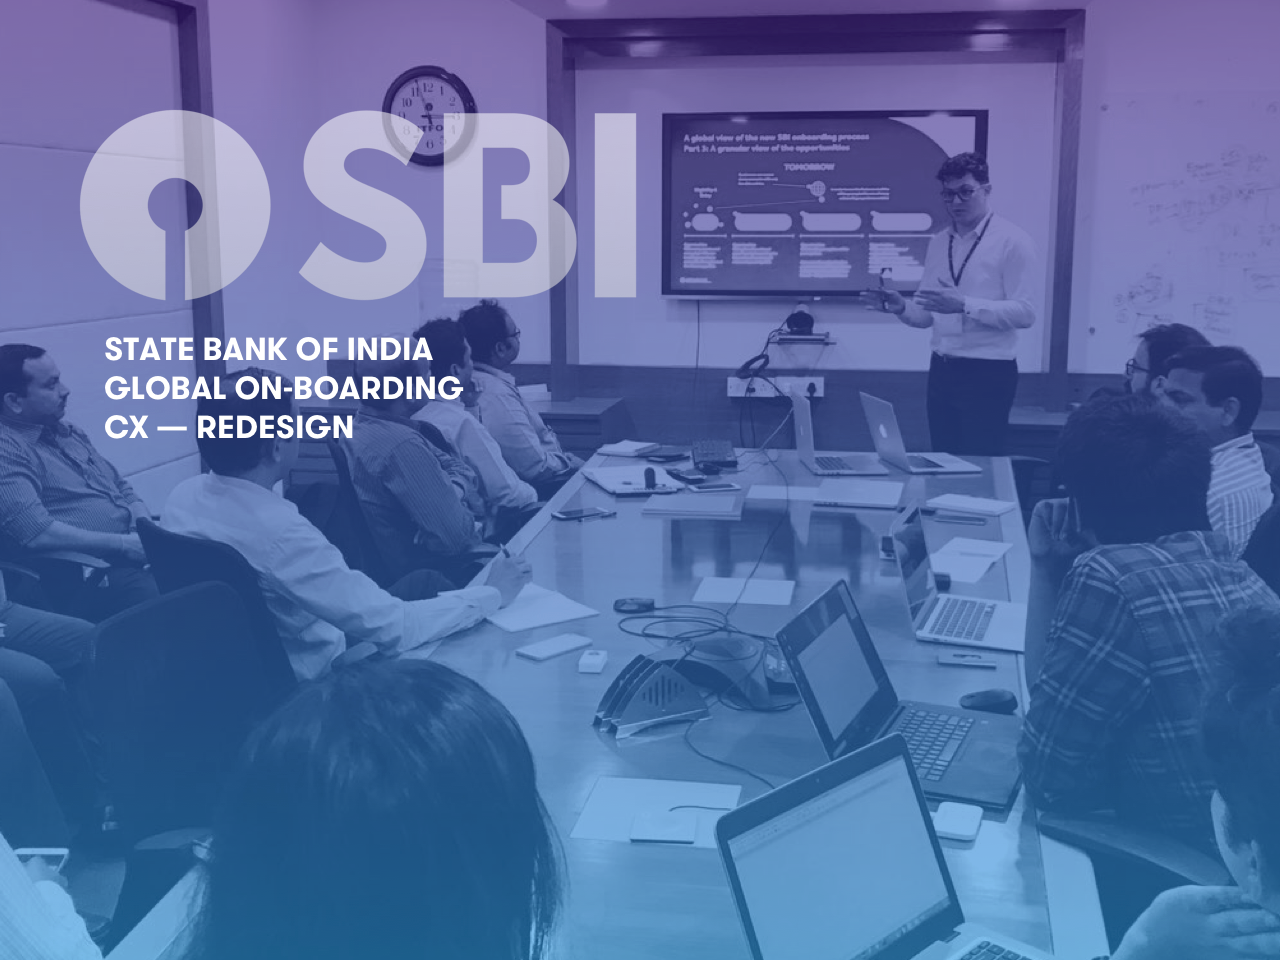 STATE BANK OF INDIA (2018)